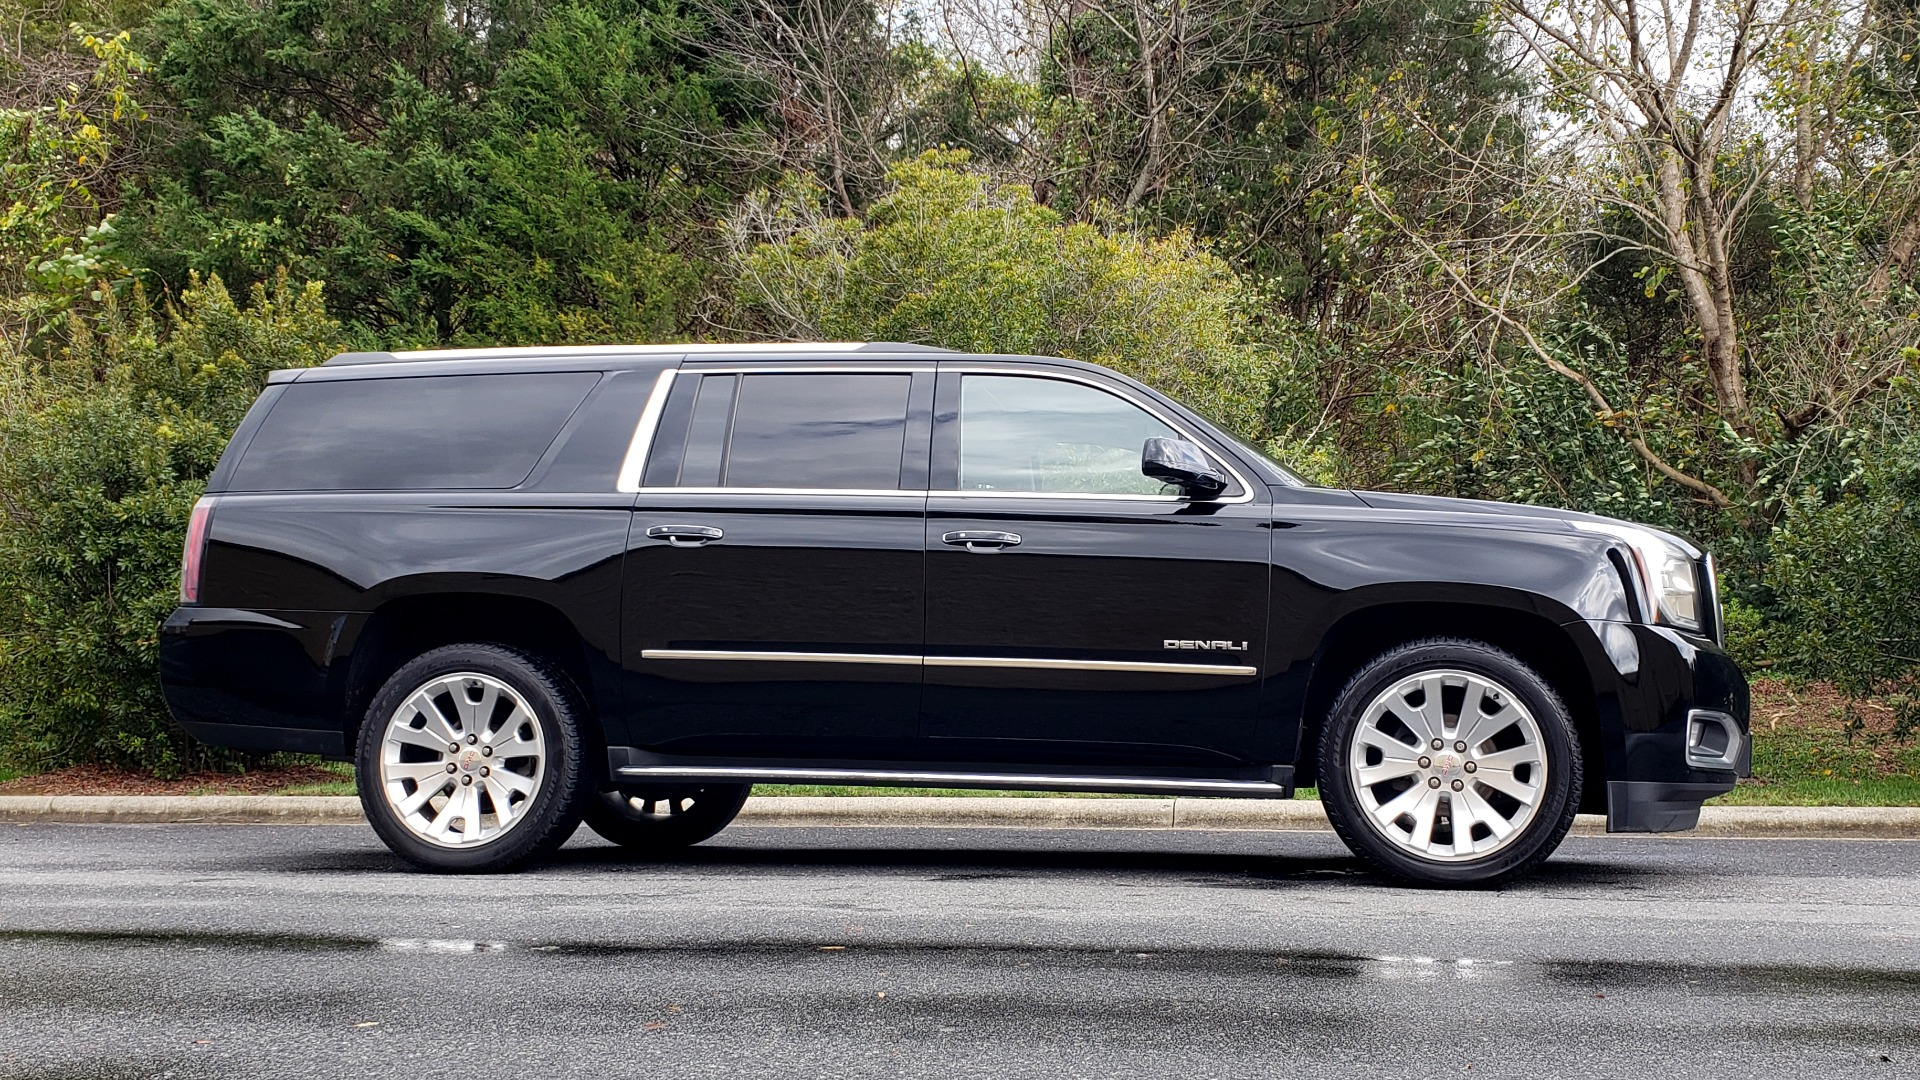 Used 2017 GMC YUKON XL DENALI 4WD / NAV / SUNROOF / ENT / 3-ROWS / BOSE / REARVIEW for sale $48,695 at Formula Imports in Charlotte NC 28227 5